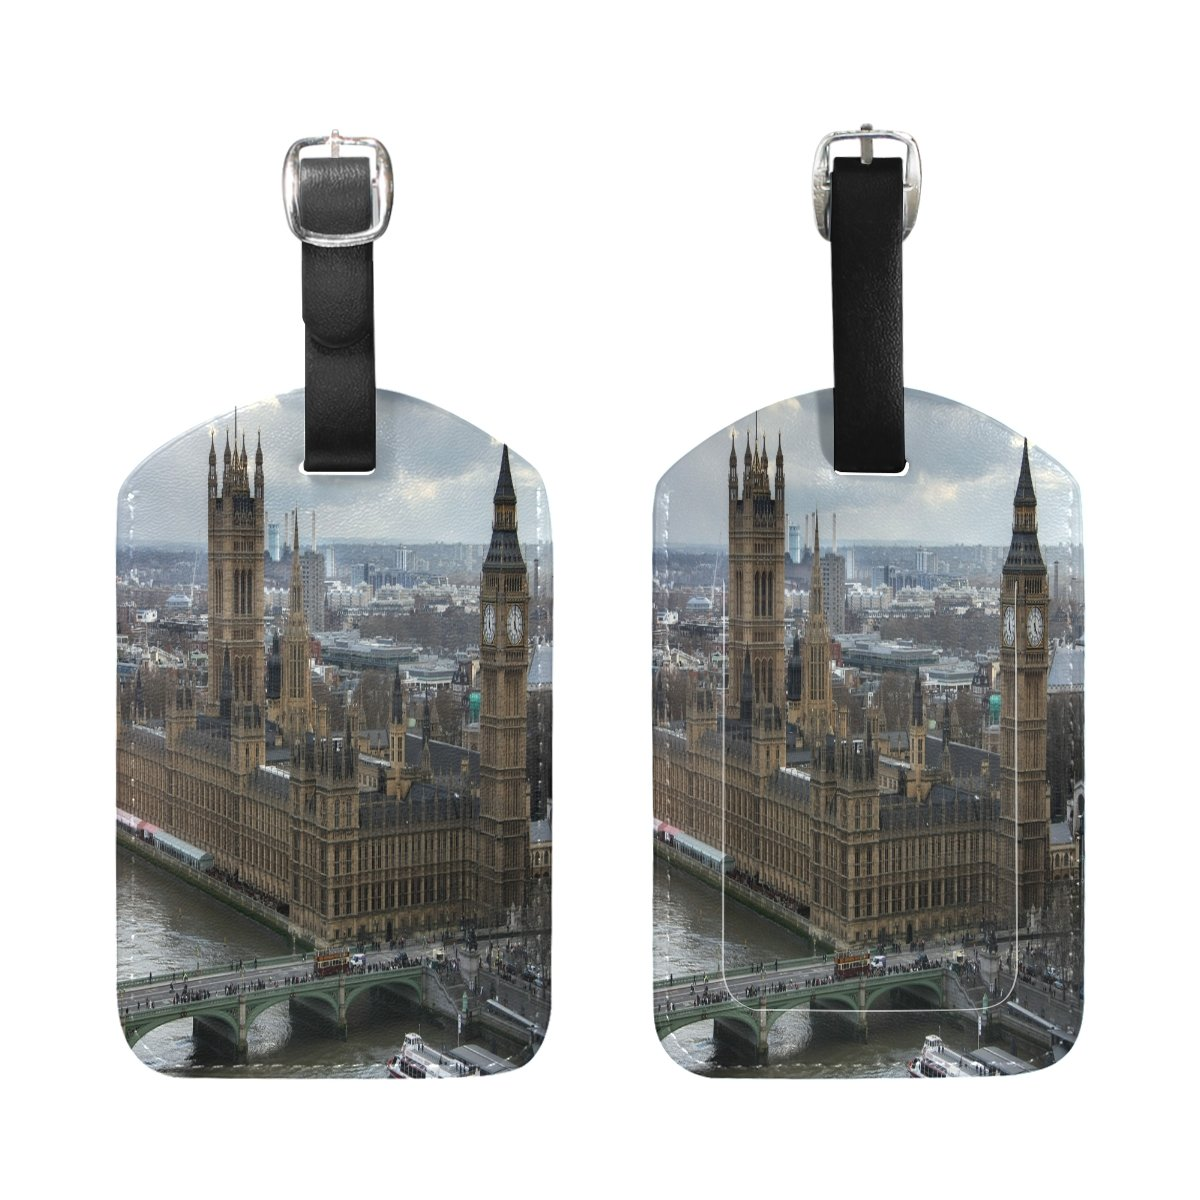 1Pcs Saobao Travel Luggage Tag Old Buildings PU Leather Baggage Suitcase Travel ID Bag Tag